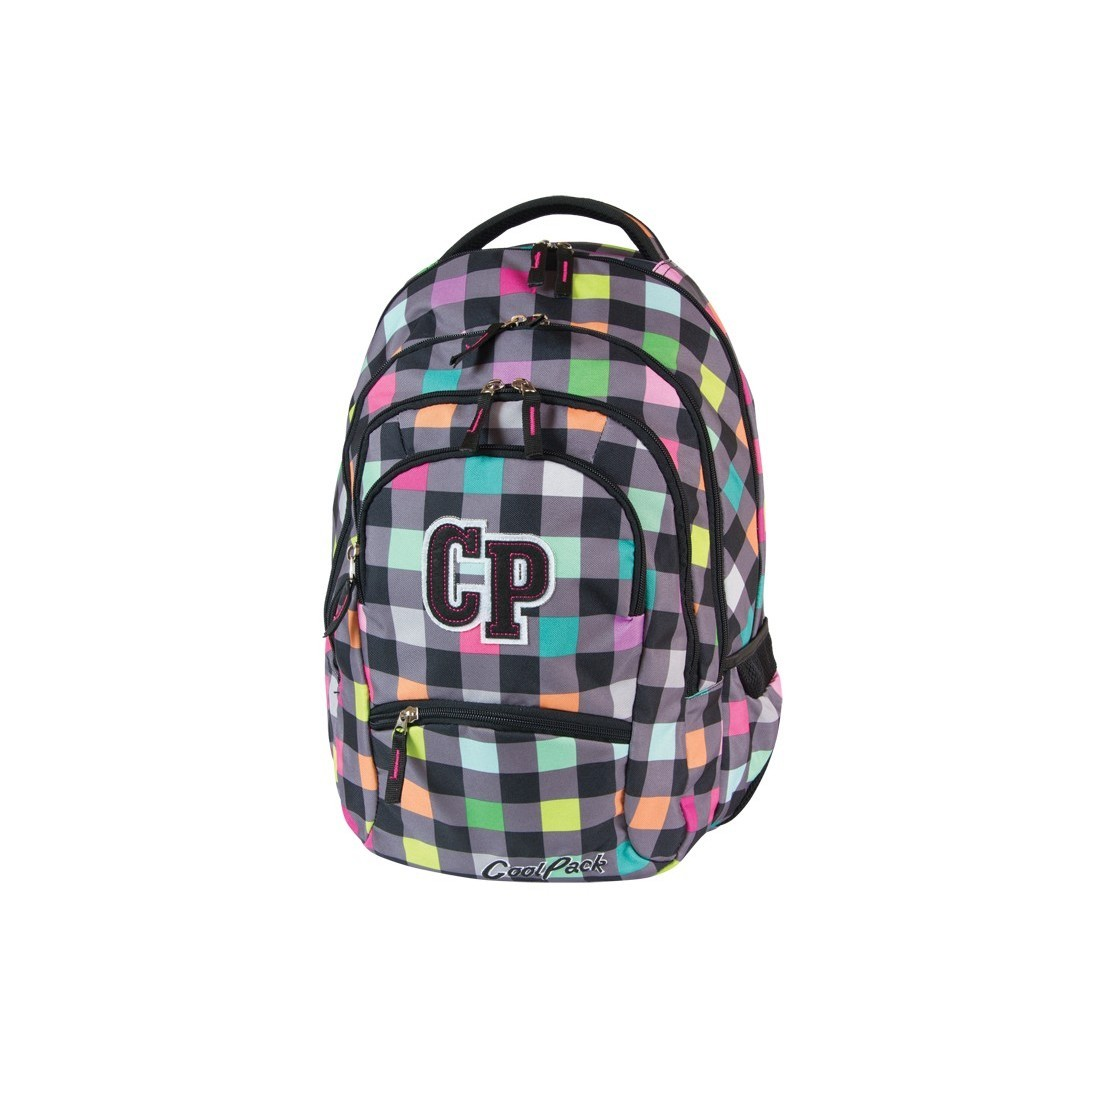 PLECAK MŁODZIEŻOWY COOLPACK COLLEGE PASTEL CHECK CP 121